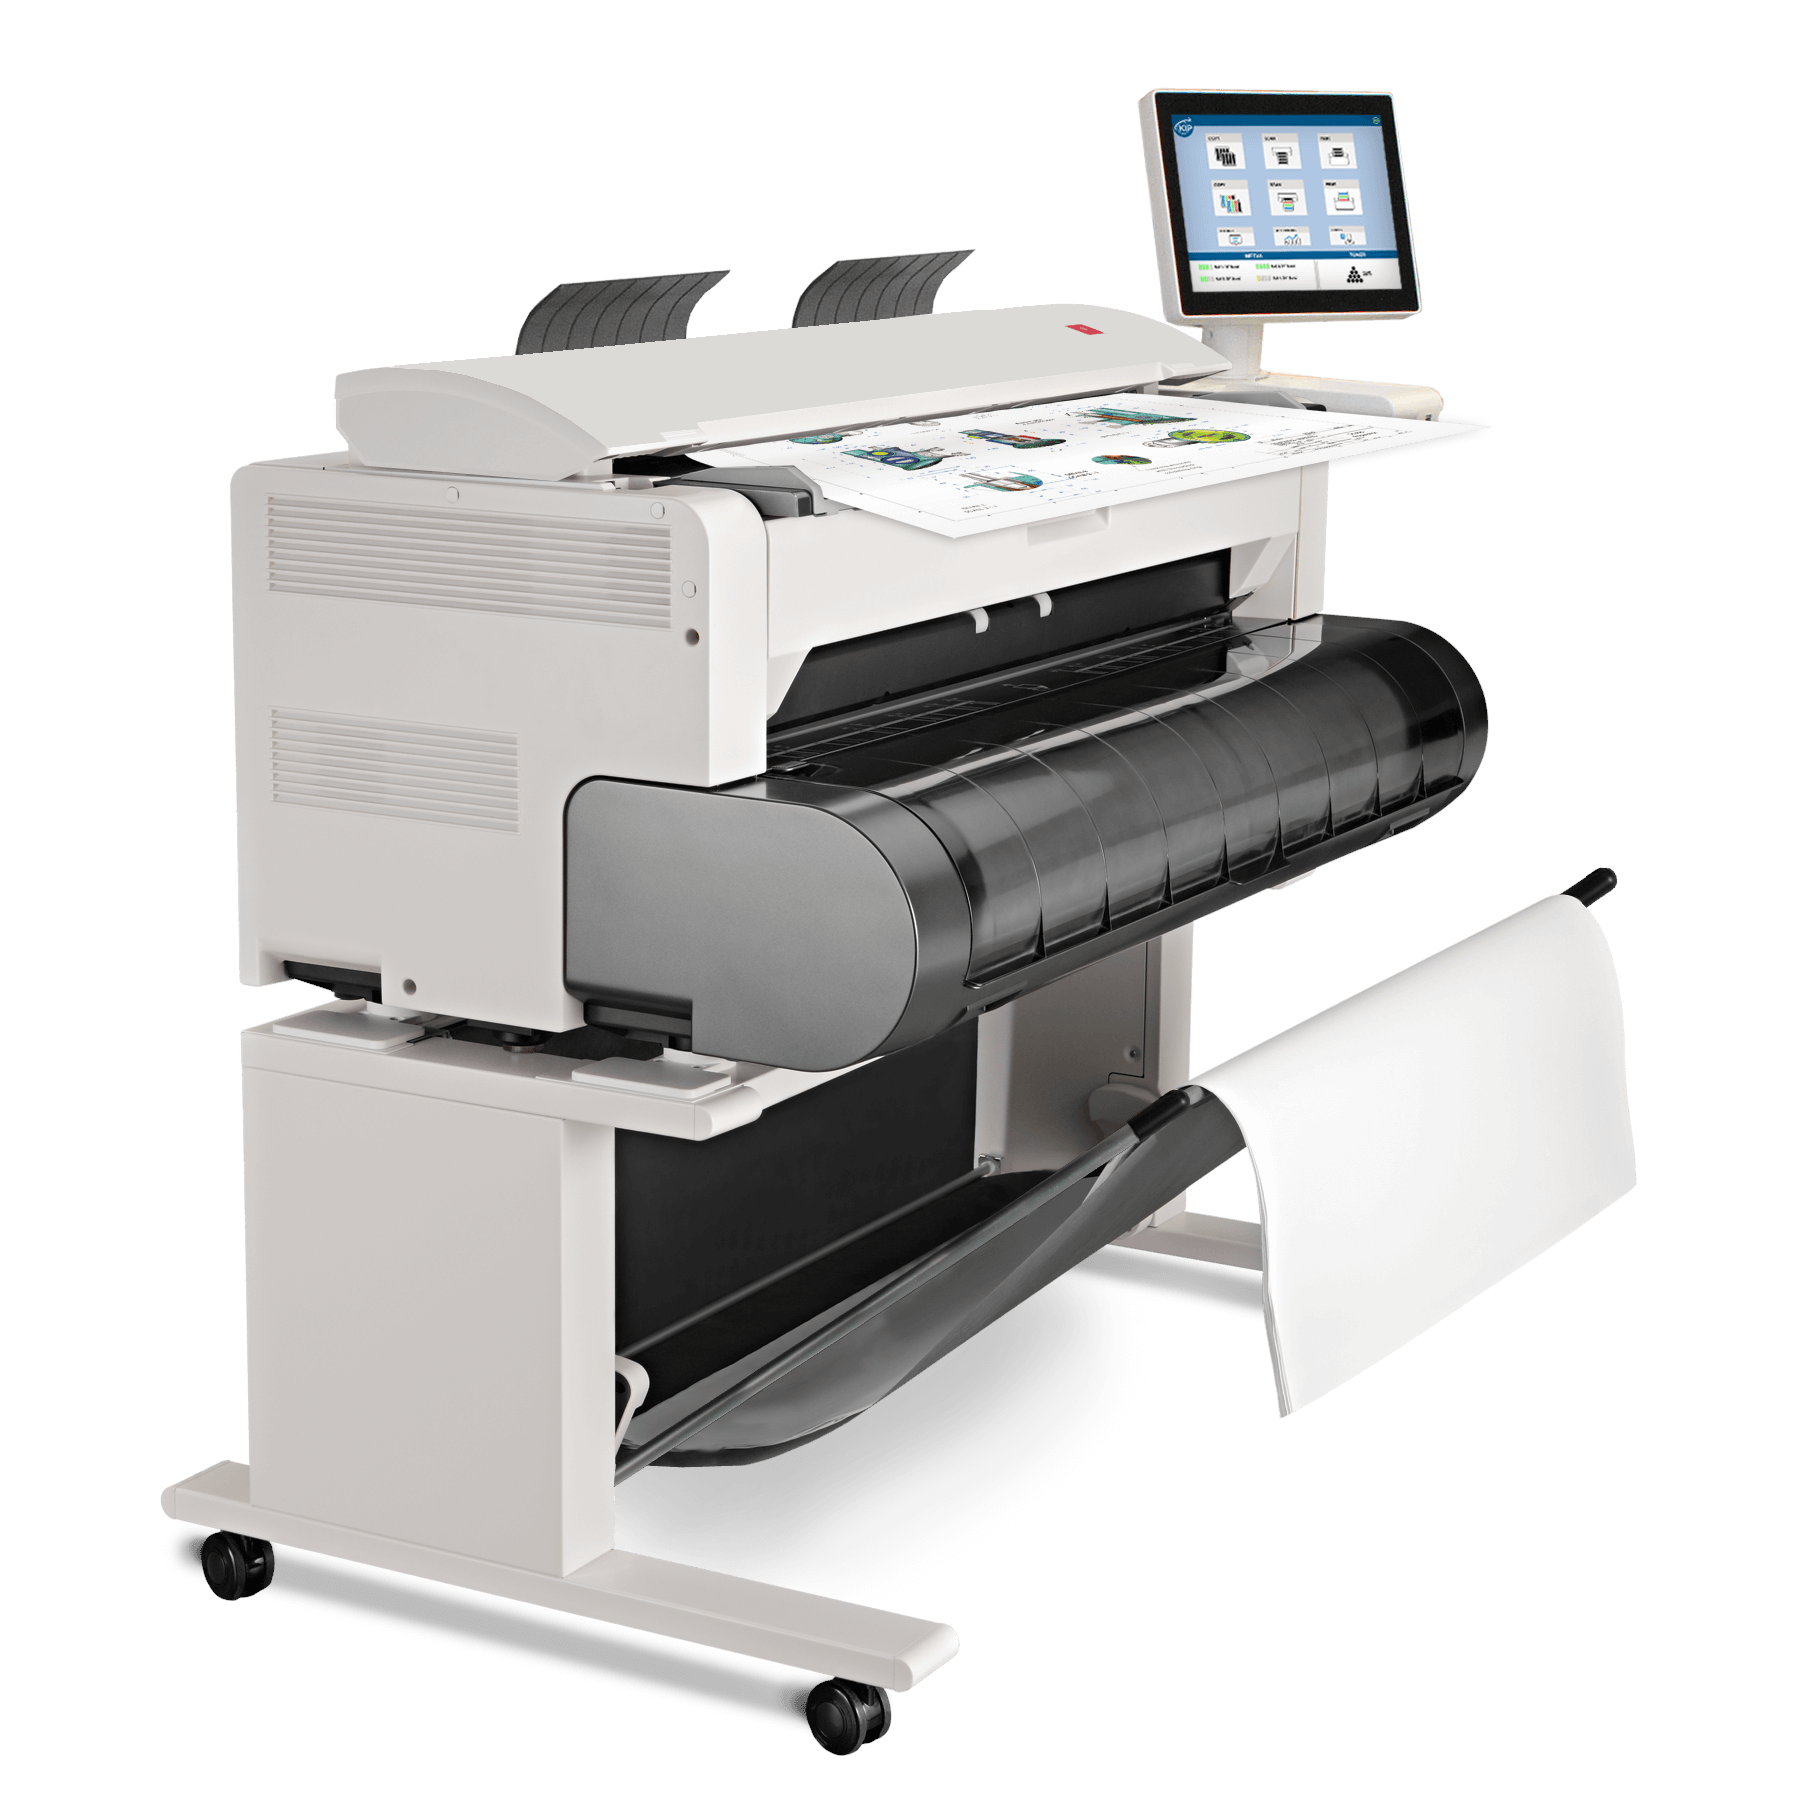 KIP 770 professional printer